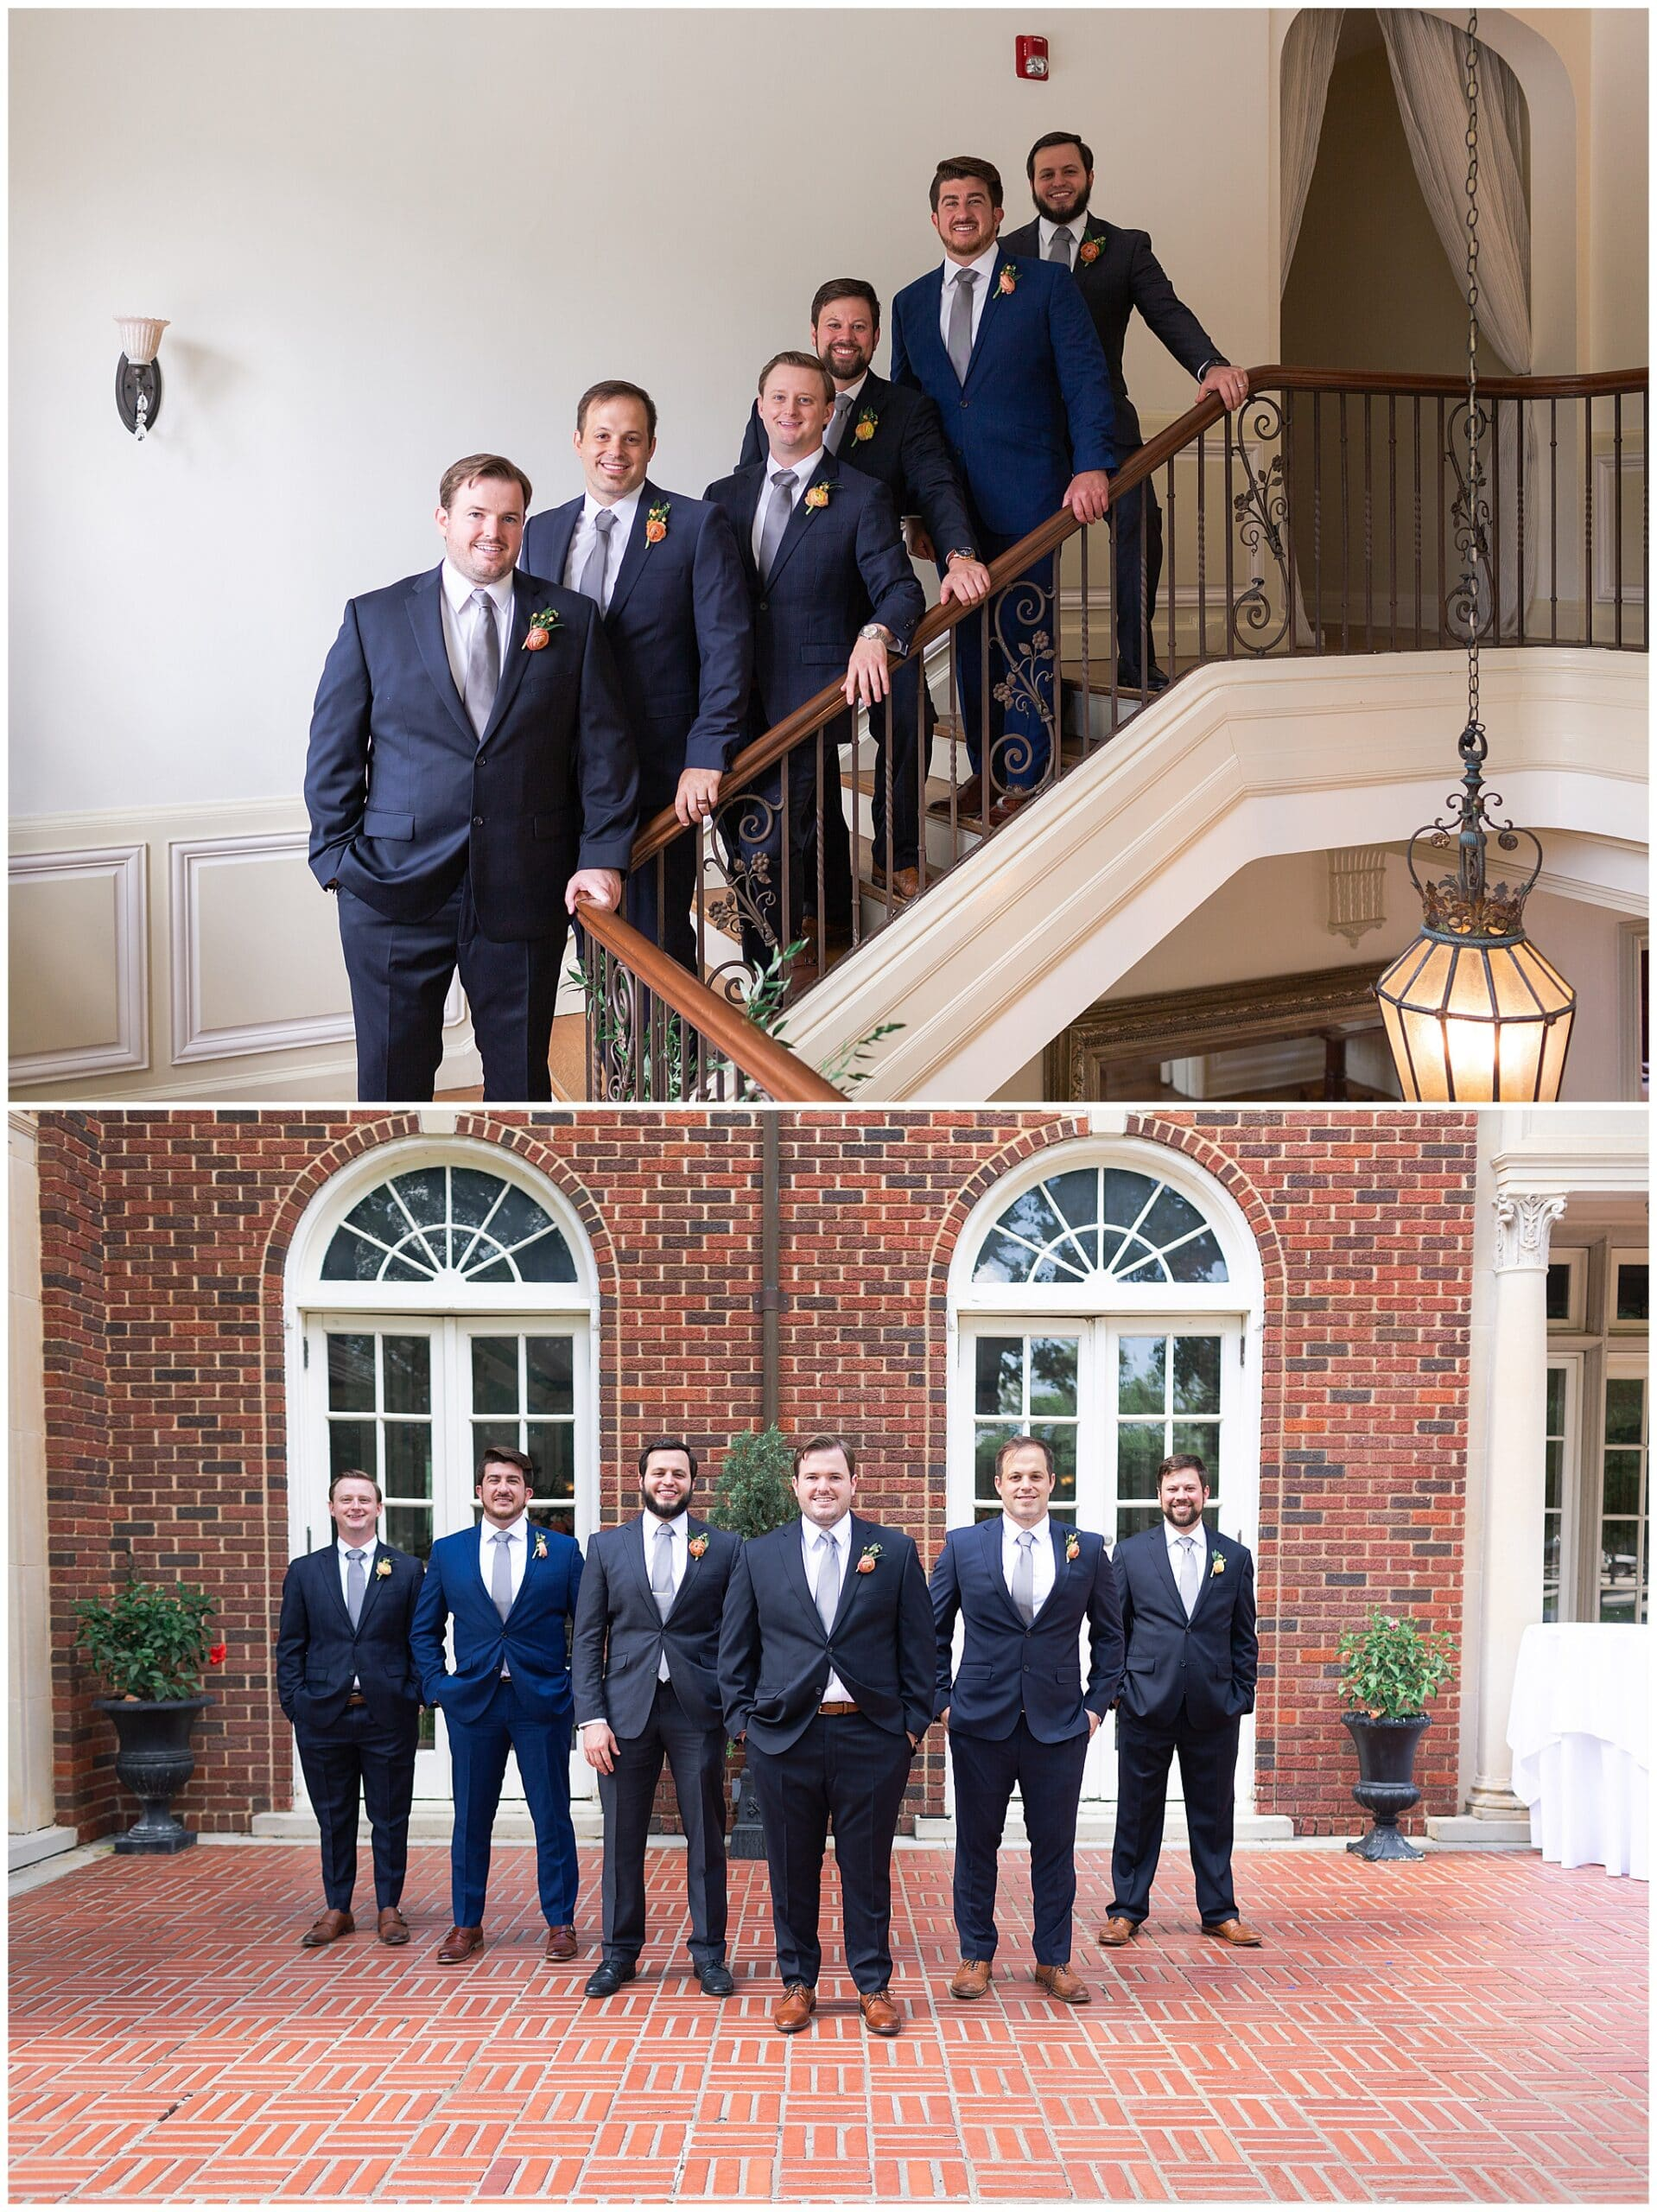 groom party portraits at Astin Mansion in Bryan Texas by Swish and Click Photography